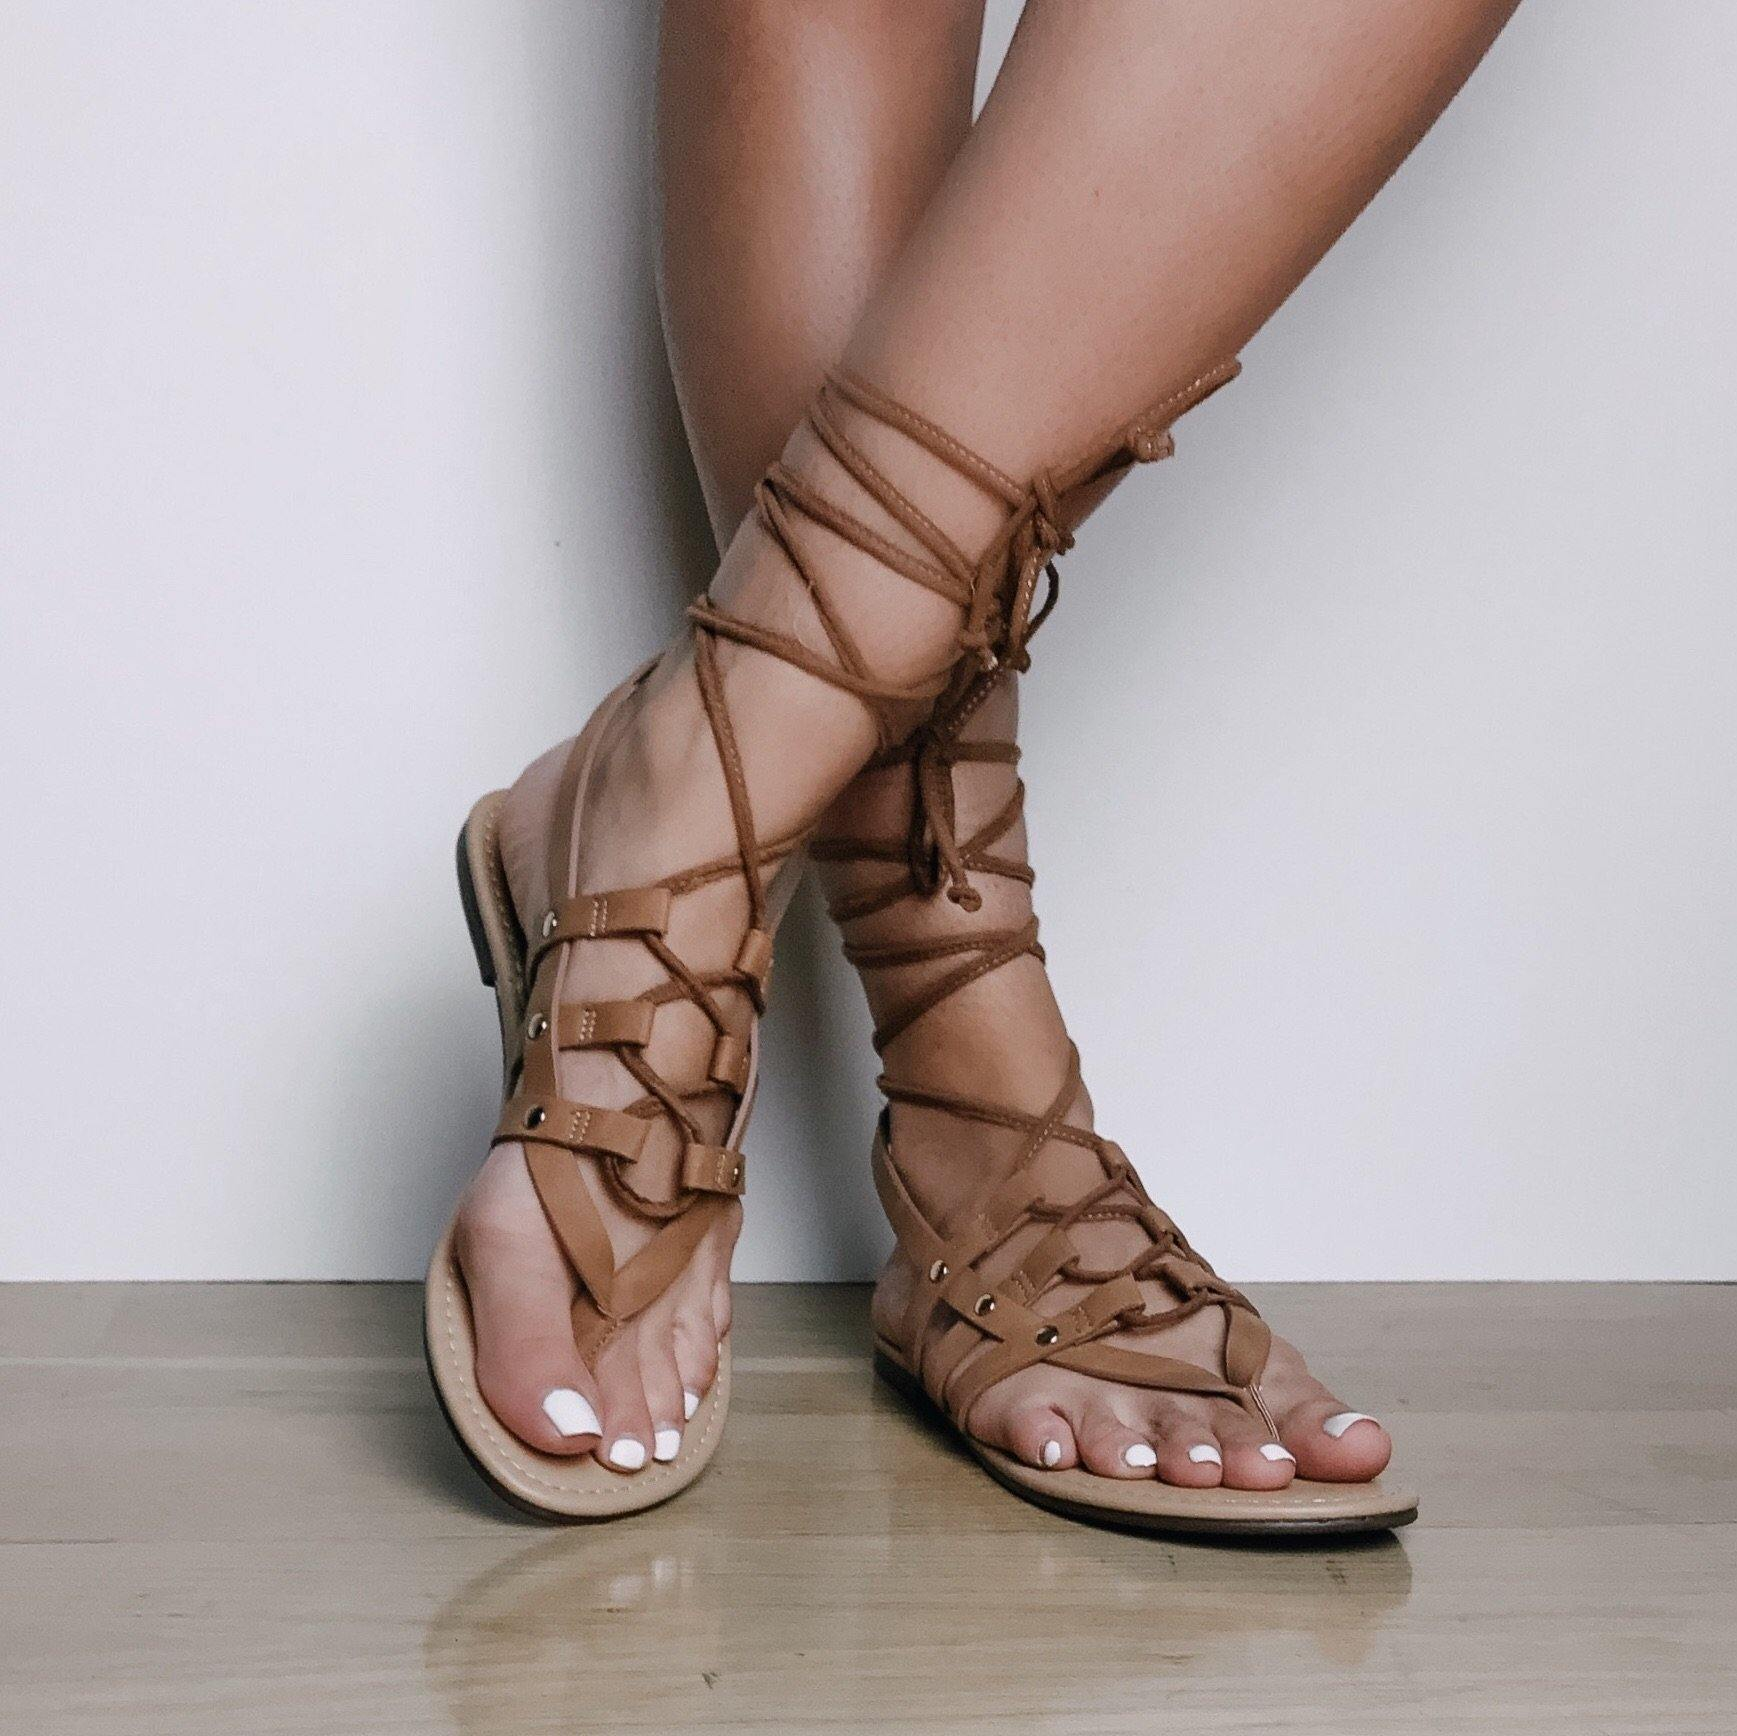 TILLIE LACE-UP SANDALS - elbie boutique, LLC